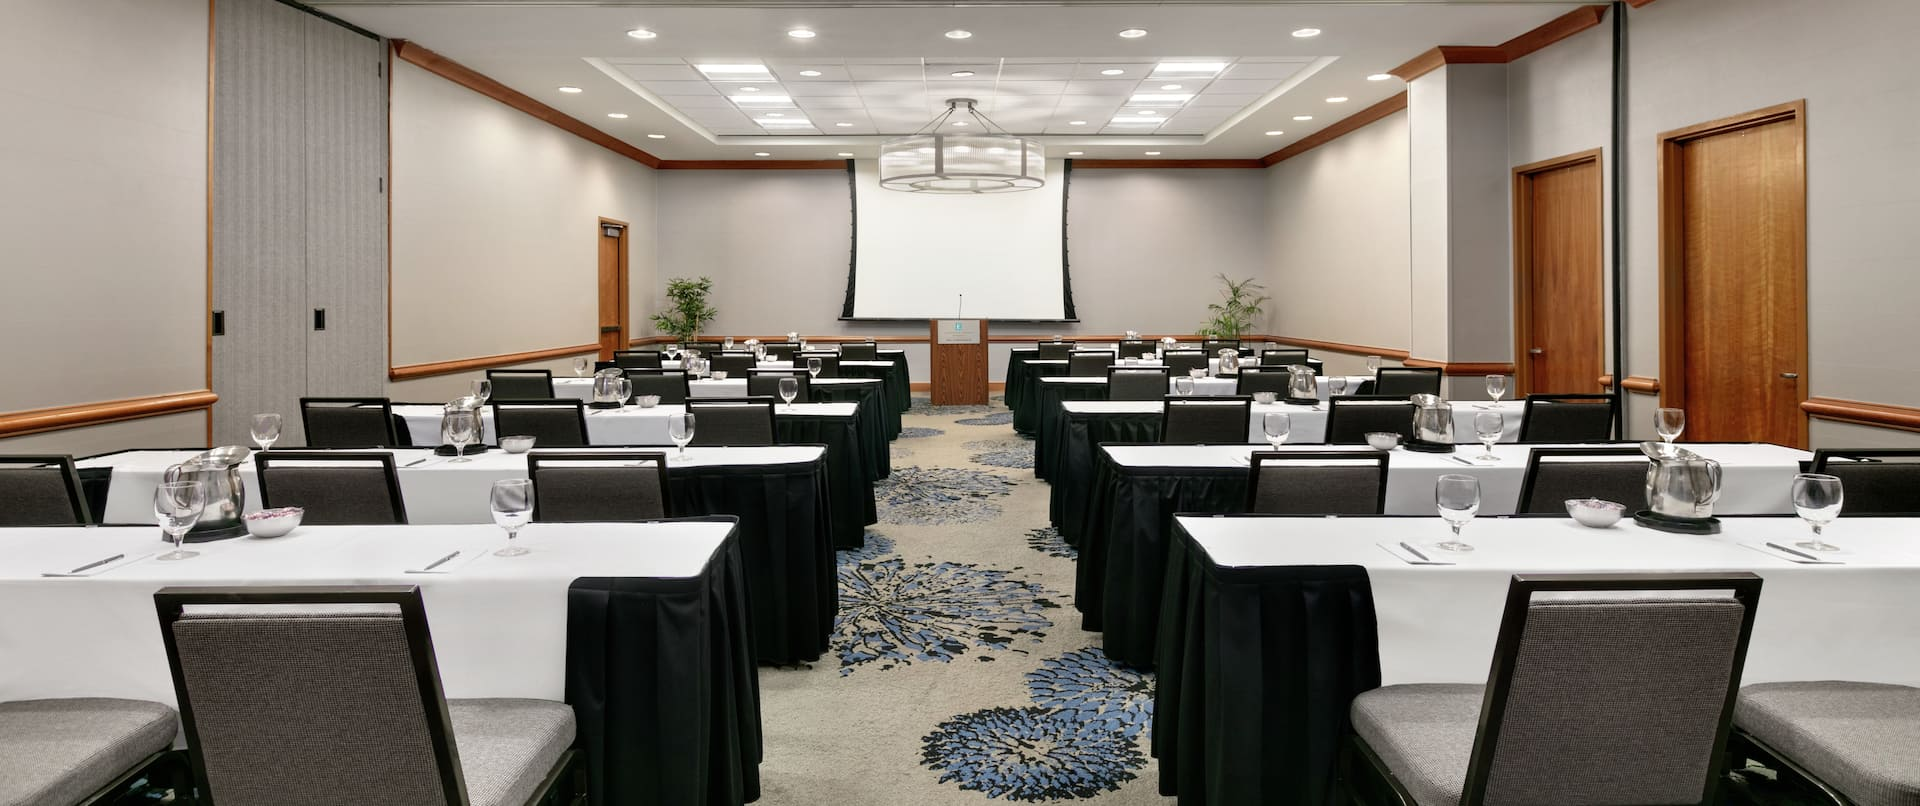 Spacious meeting room facility equipped with classroom style tables, projector screen with equipment, and podium.